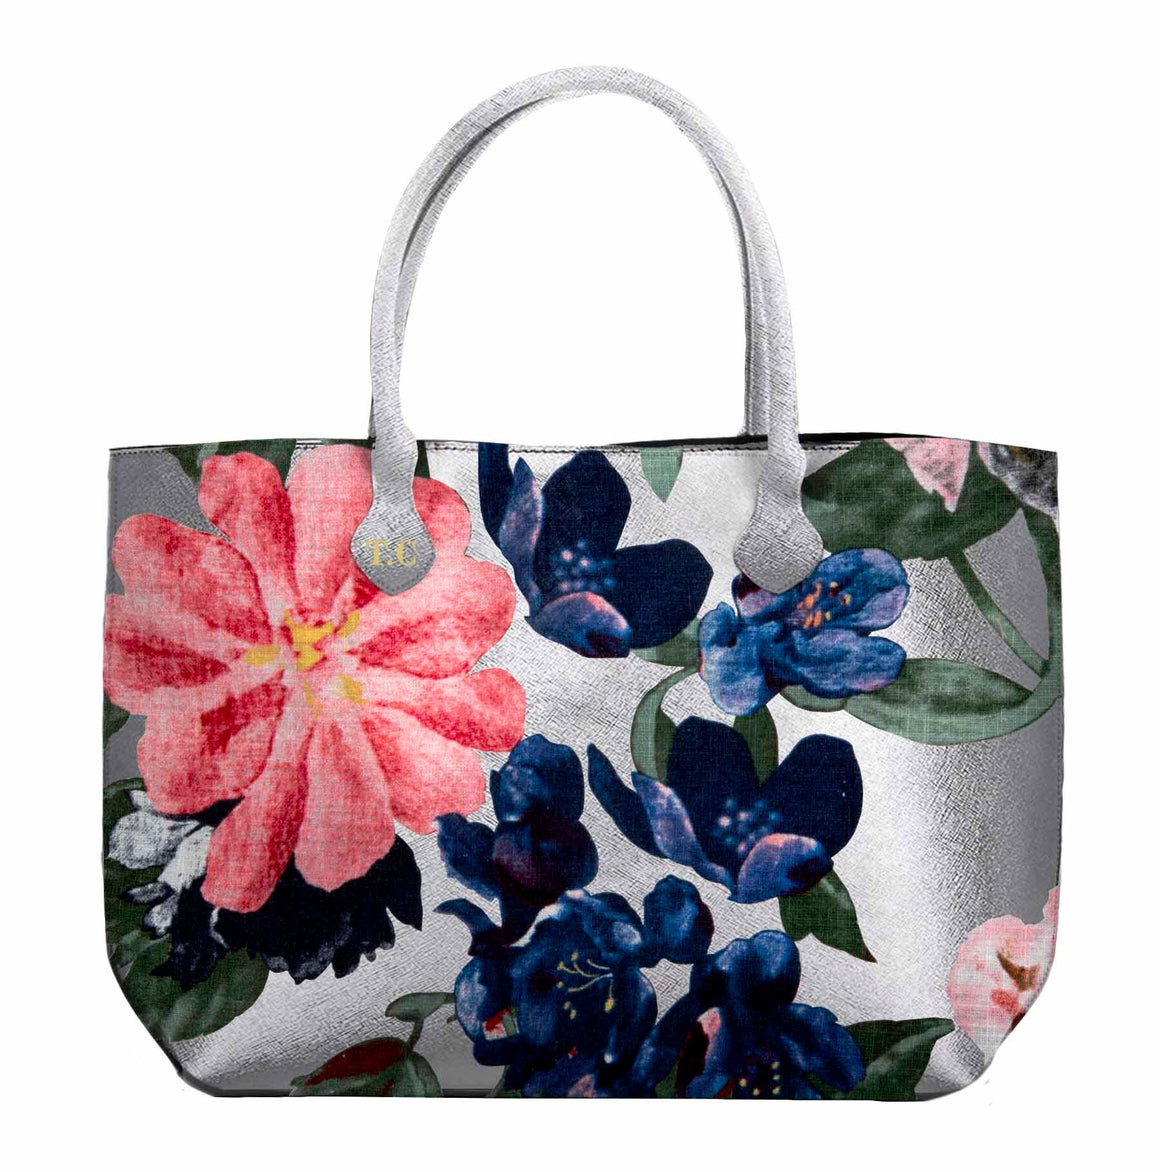 Trelise Cooper Lost In The Meadows Tote - Silver Floral